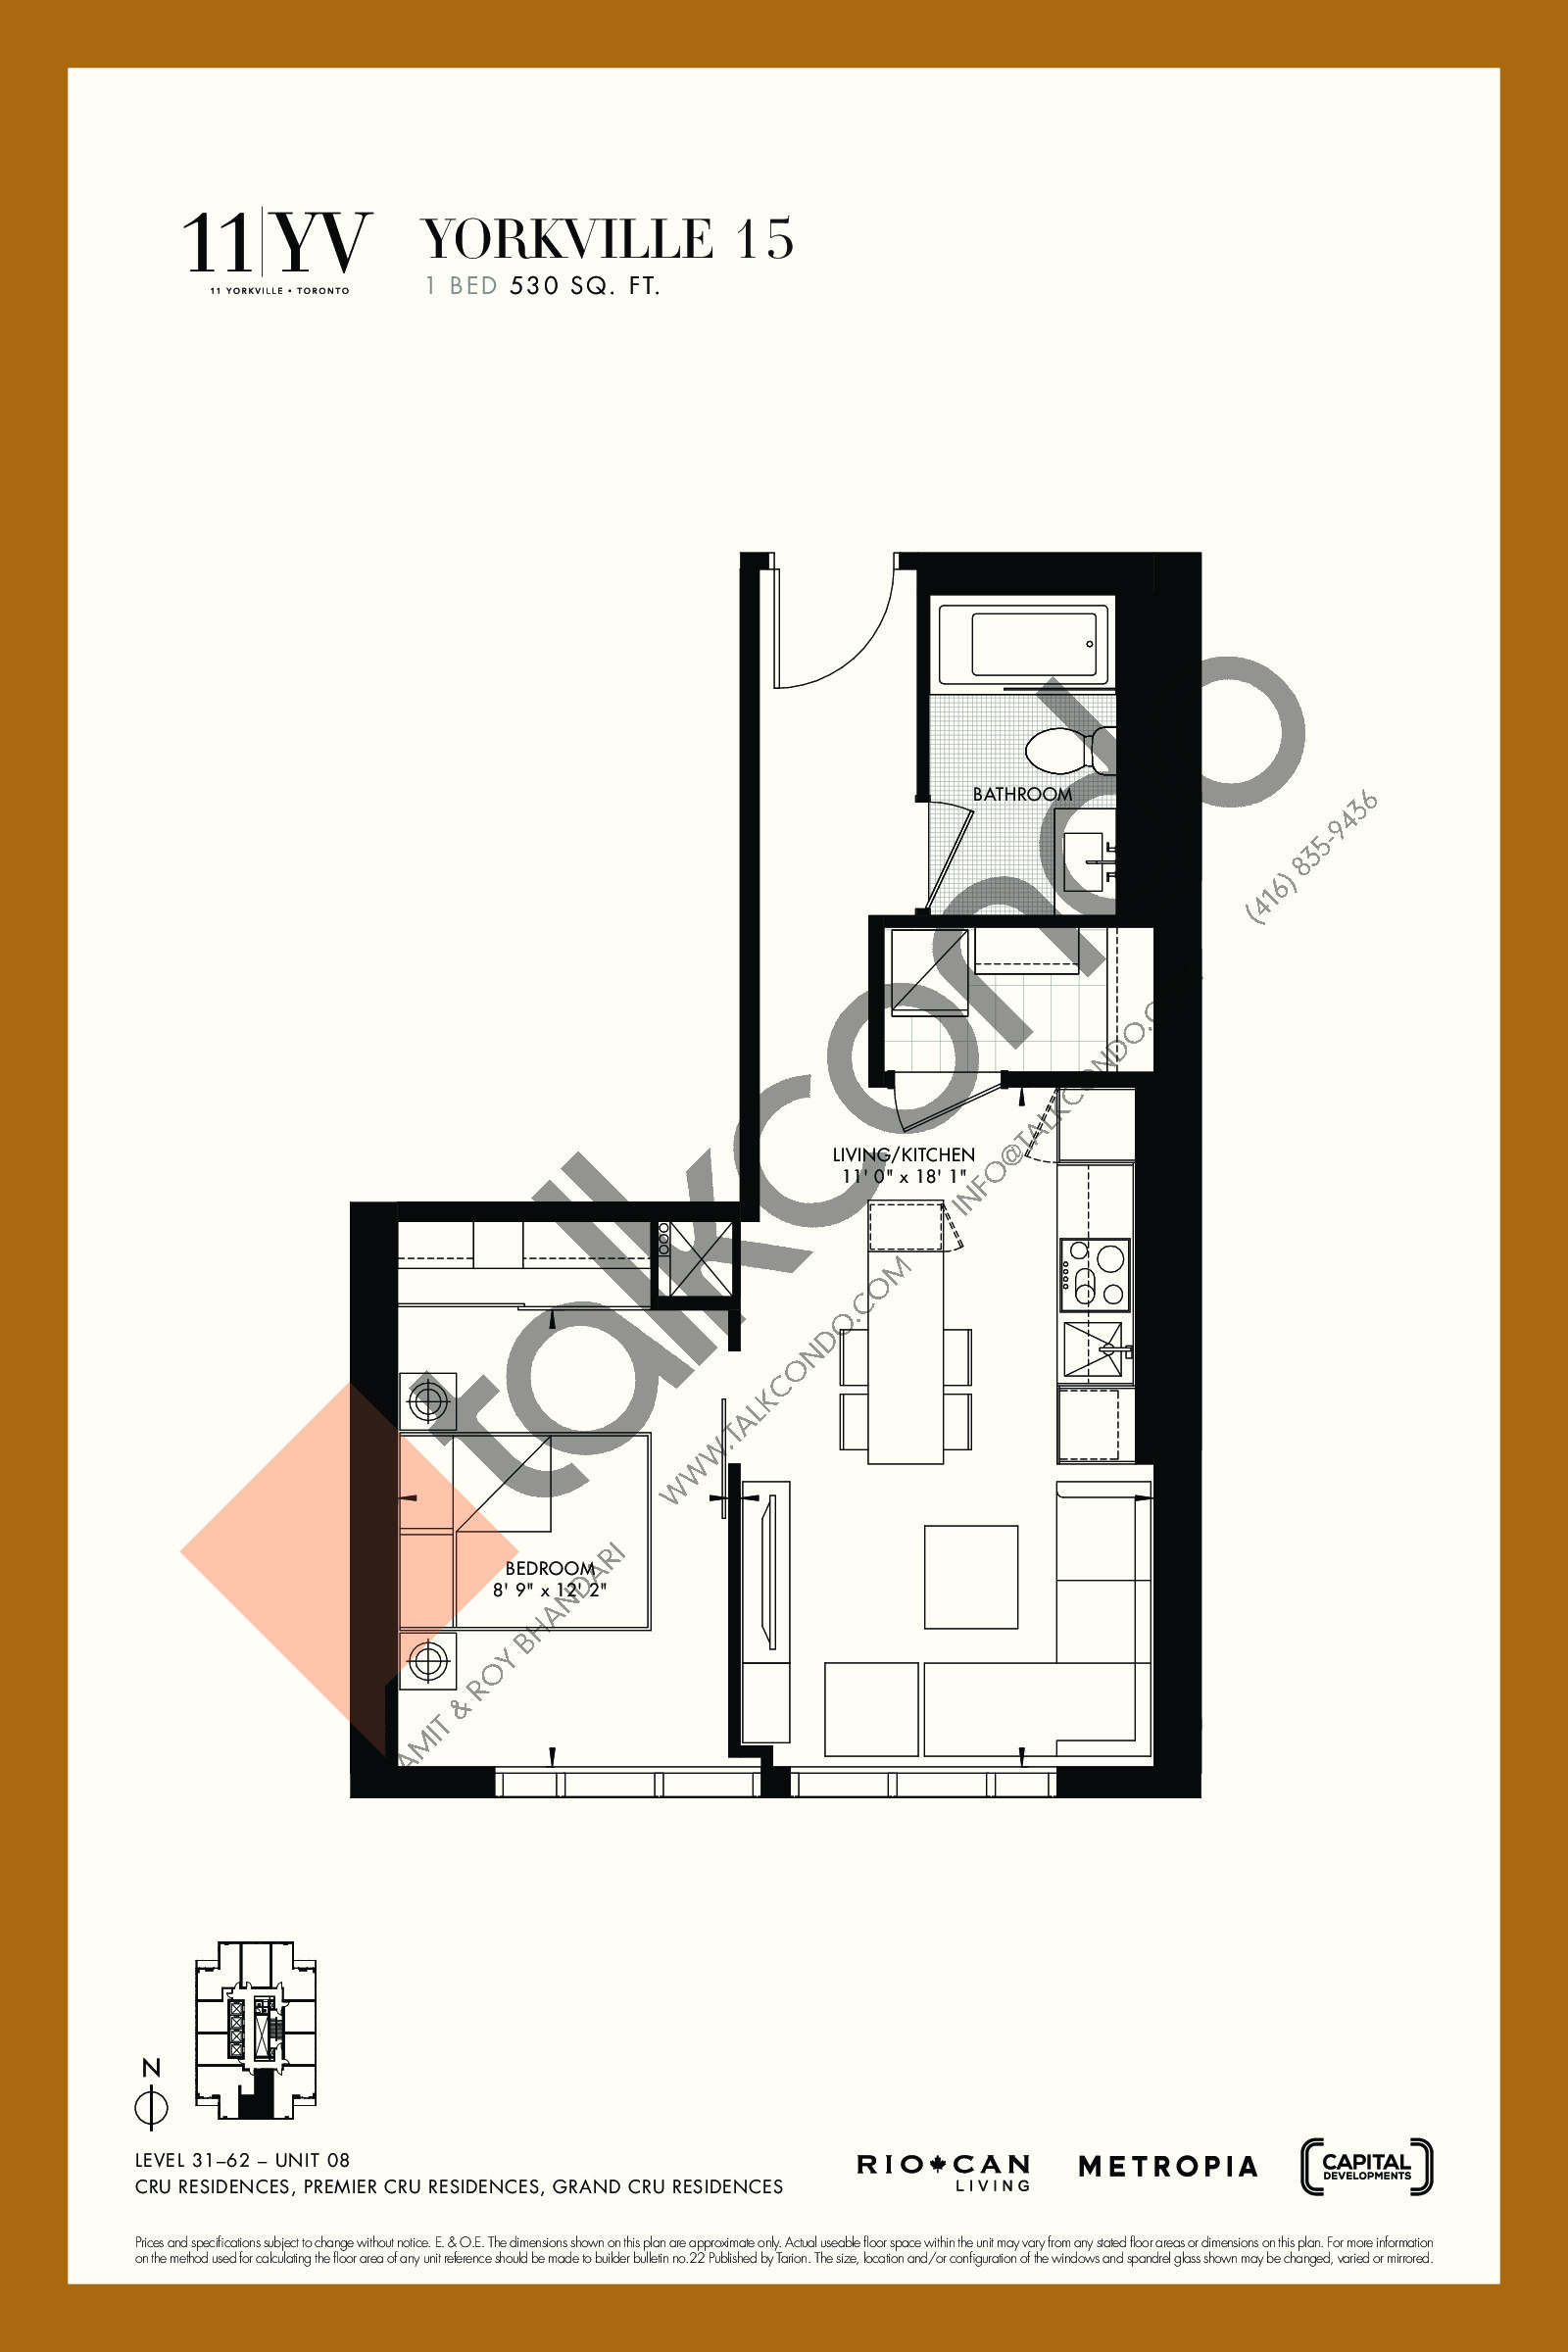 Yorkville 15 Floor Plan at 11YV Condos - 530 sq.ft